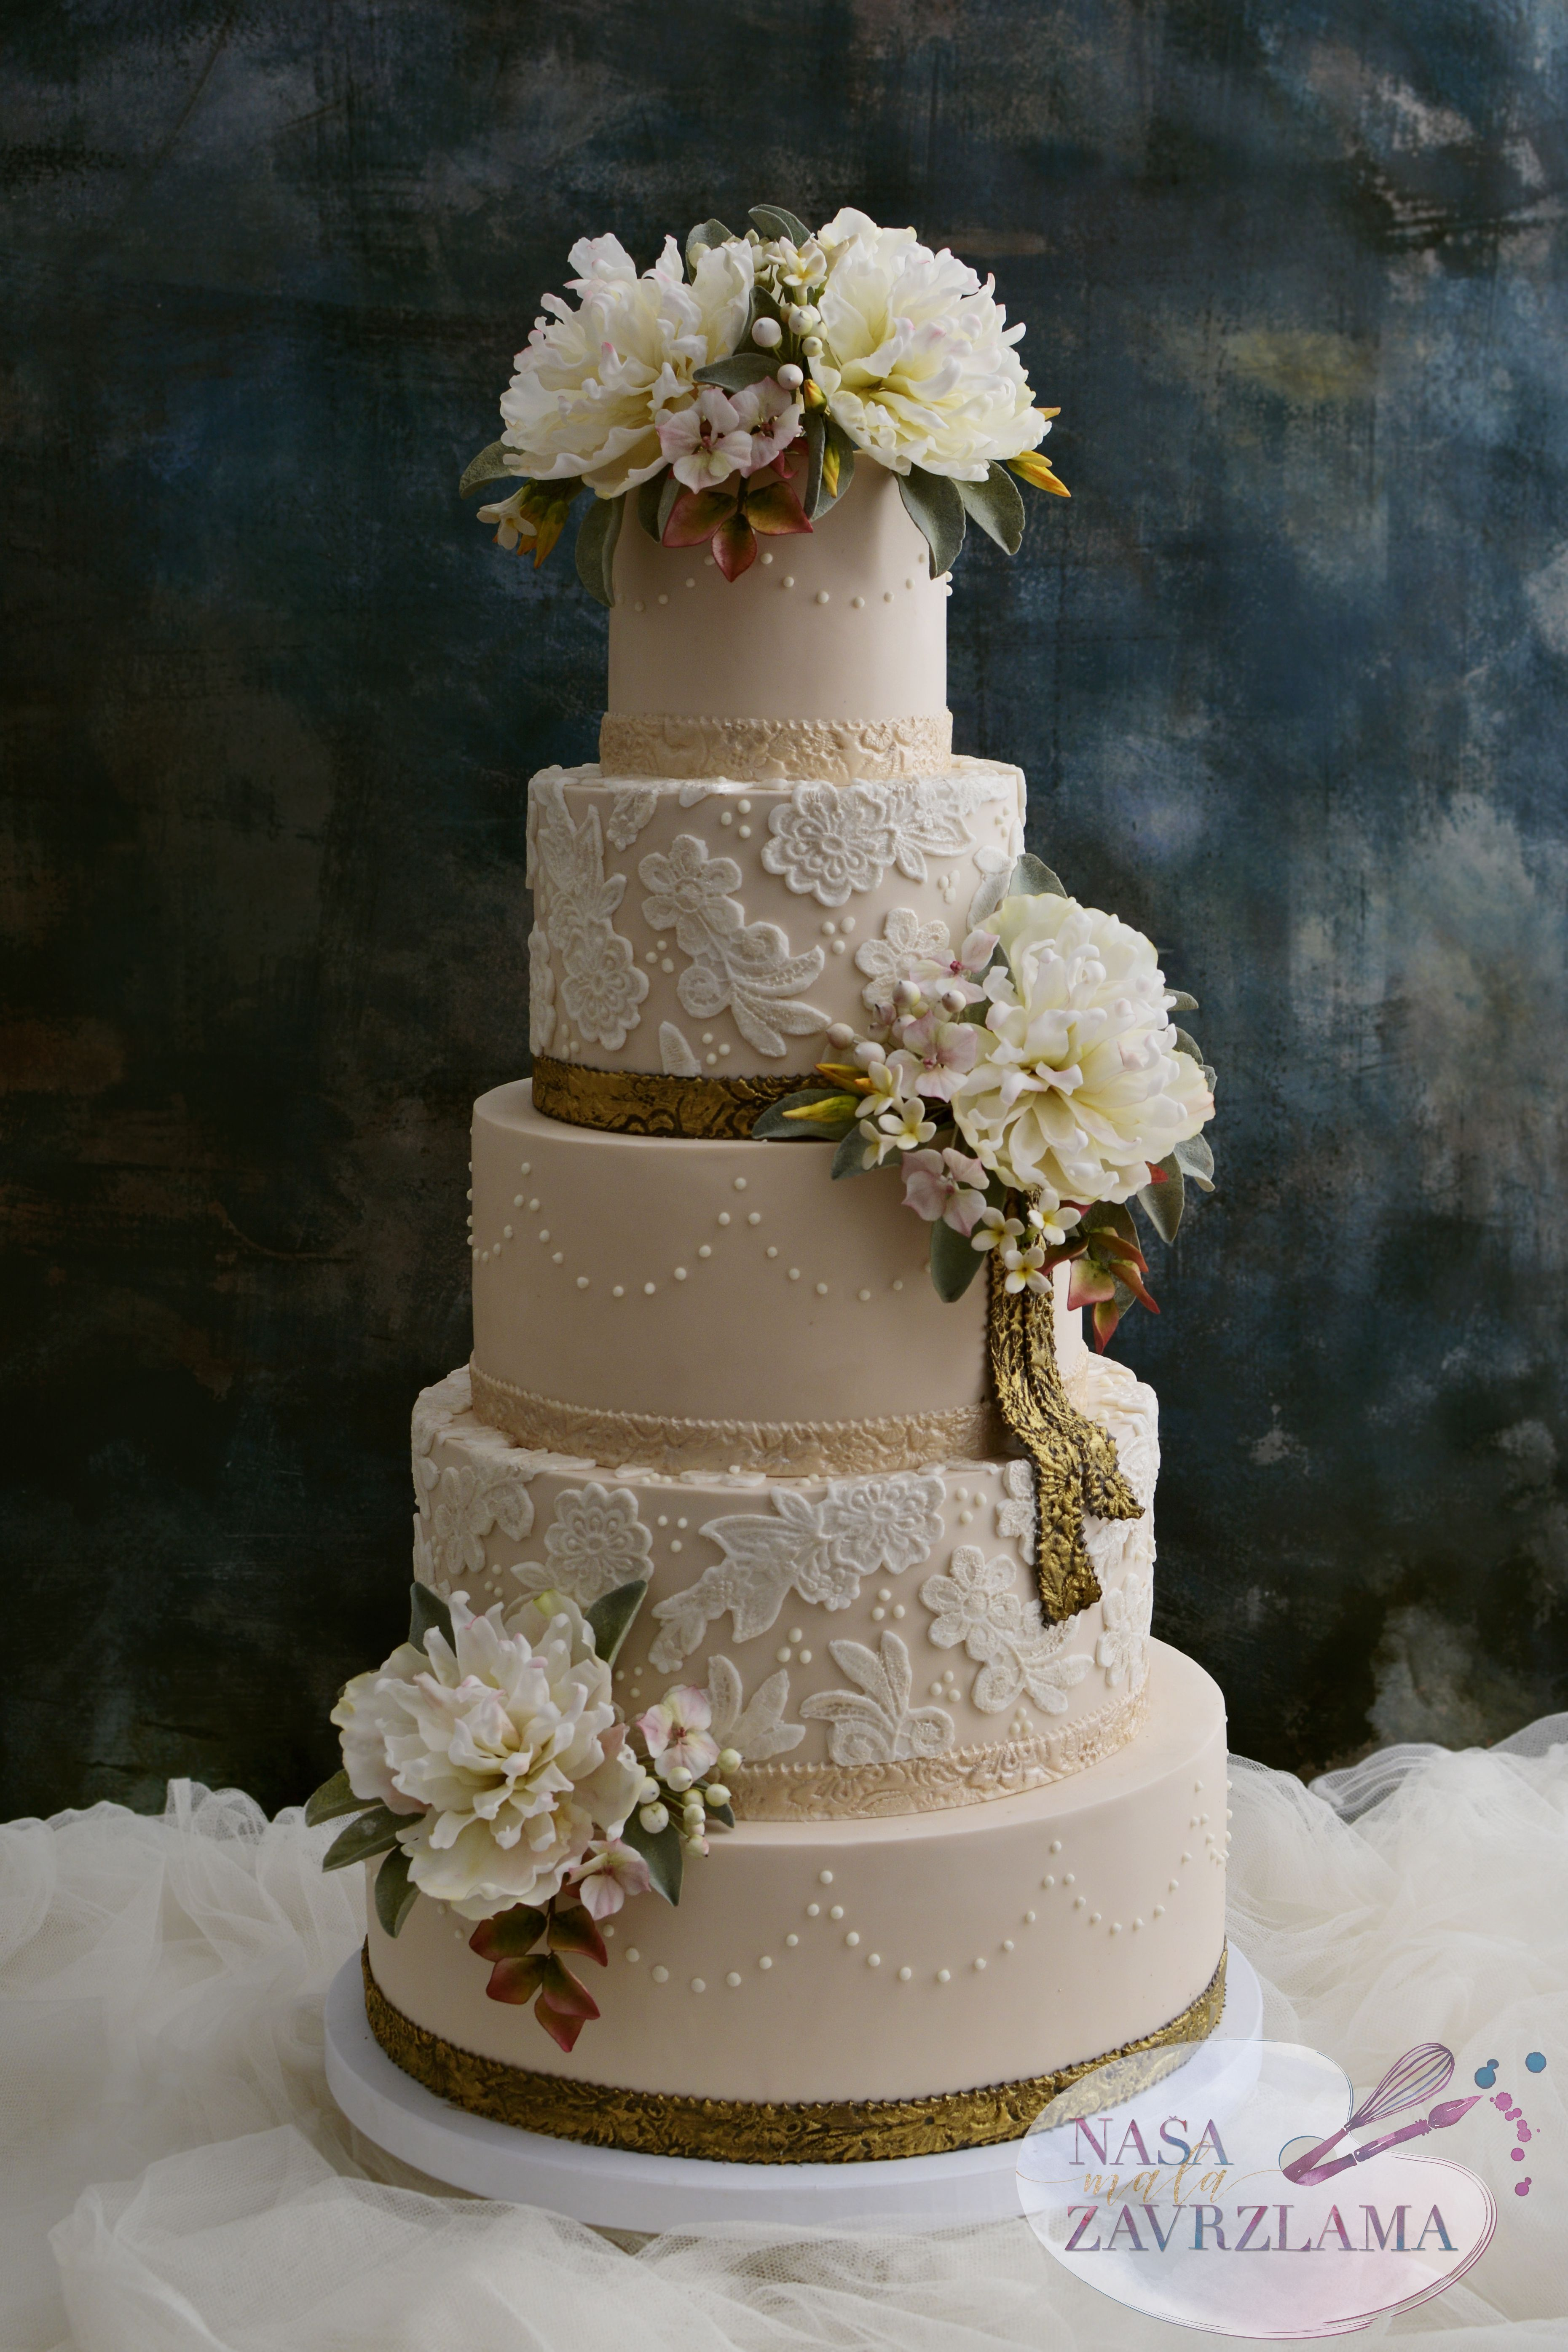 Cream Lace Cake With Flowers Wedding Cakes Wedding Cakes In 2020 Lace Wedding Cake Wedding Cakes With Flowers Lavender Wedding Cake